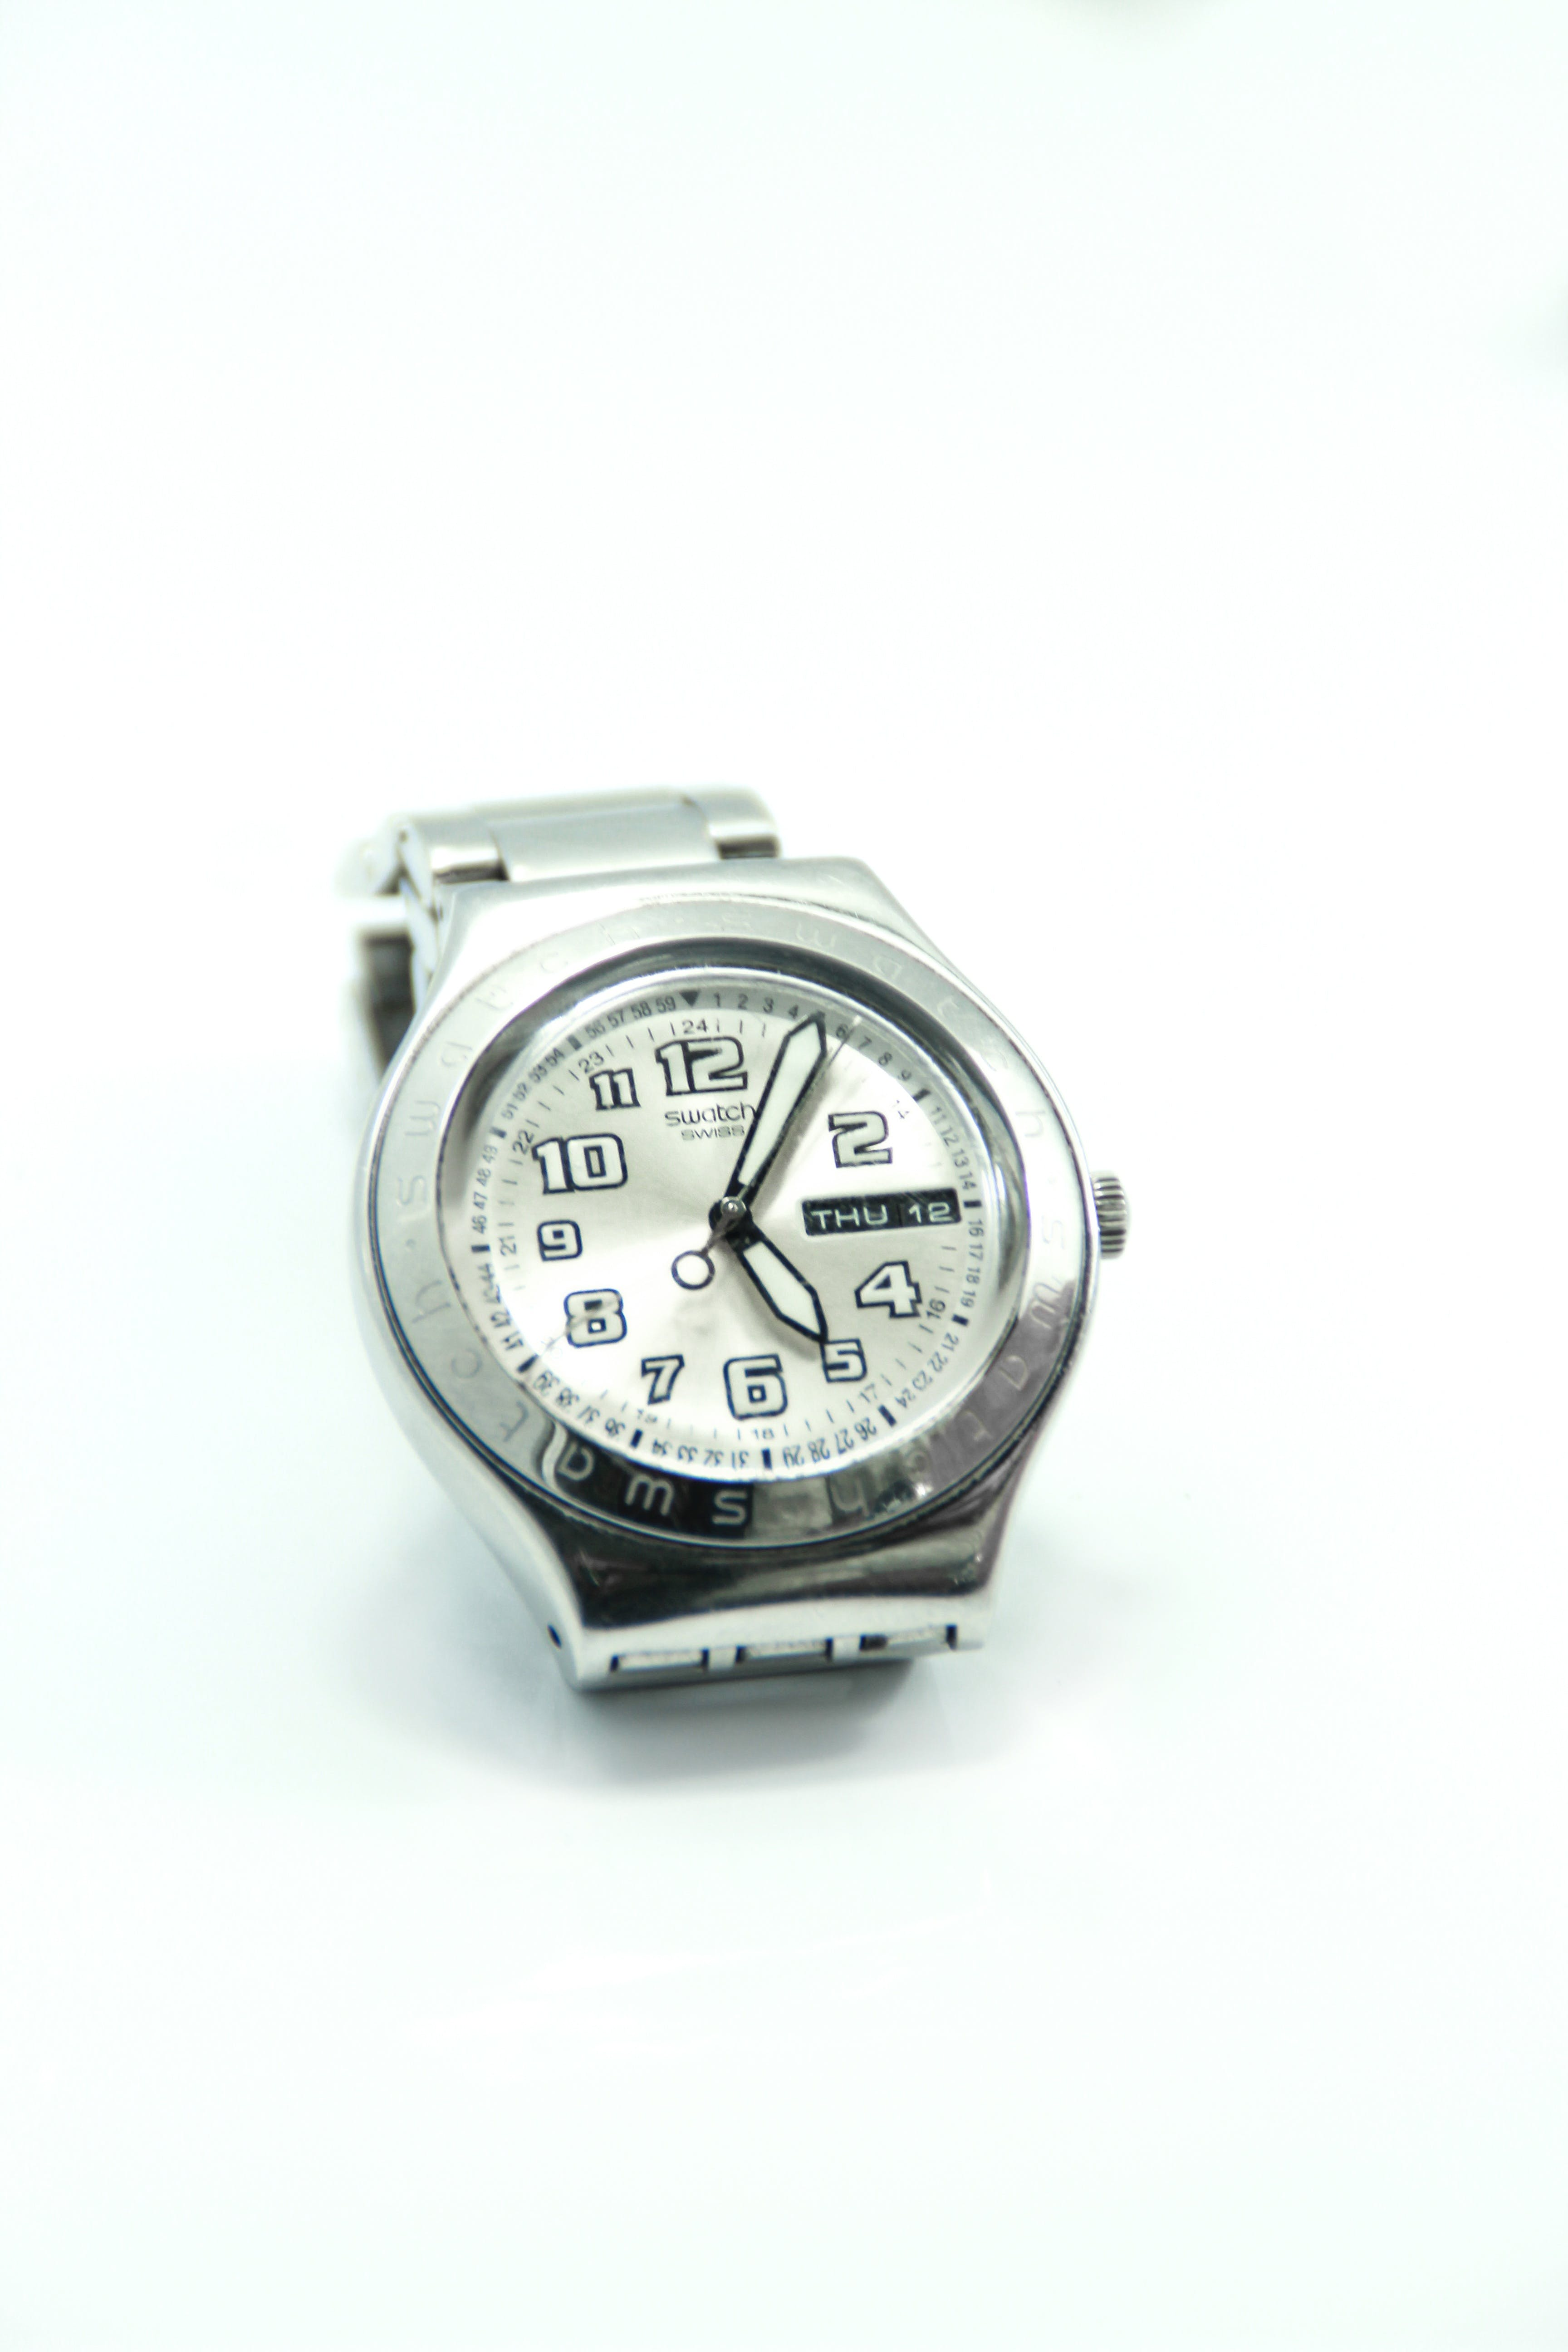 Round Silver-colored Analog Watch Reading at 5:05